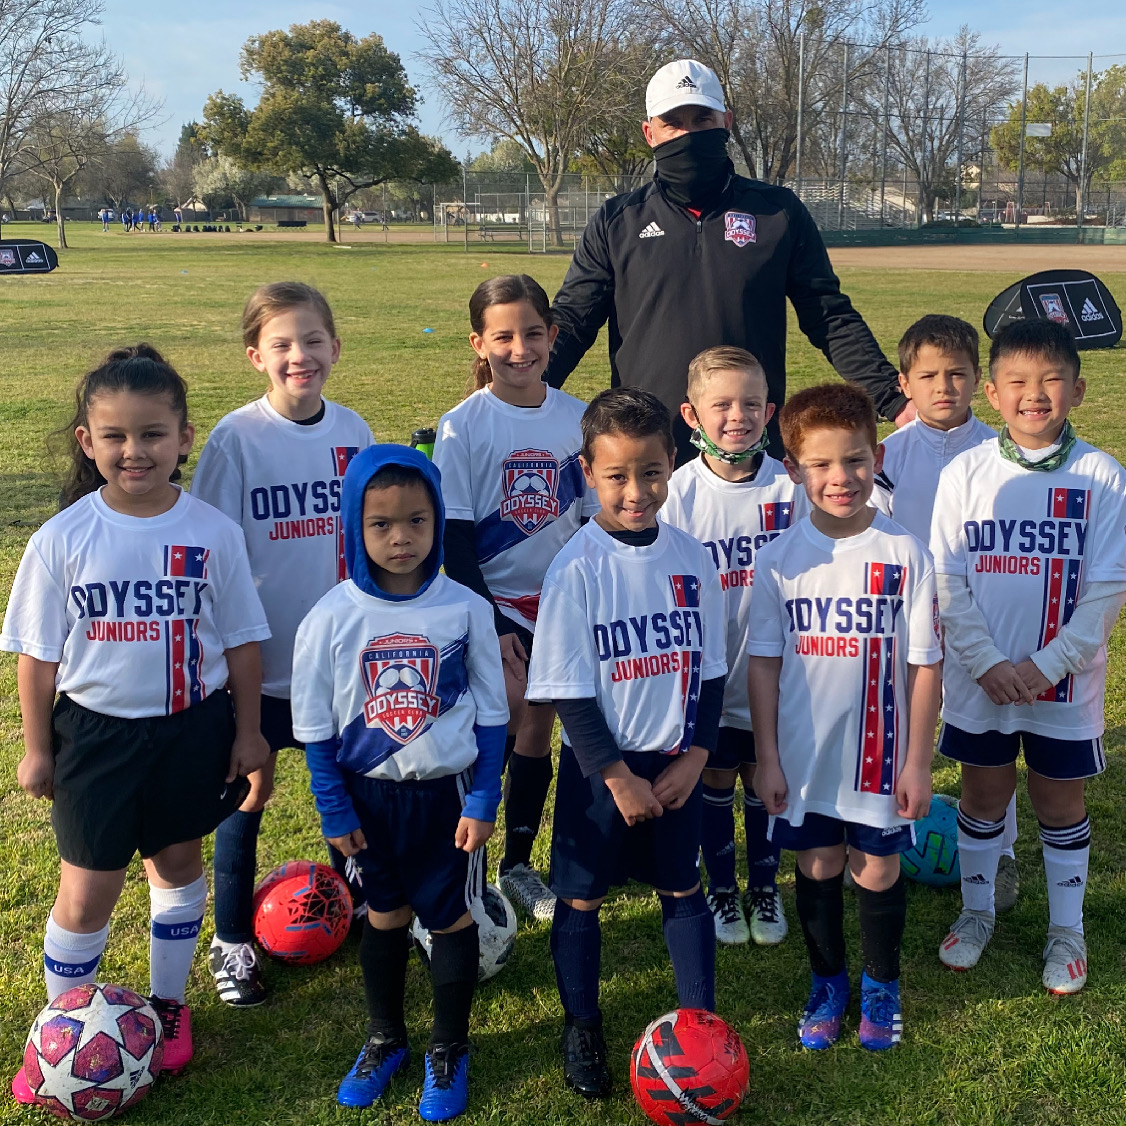 California Odyssey Soccer Club names Ben Lomeli as Youth Director.